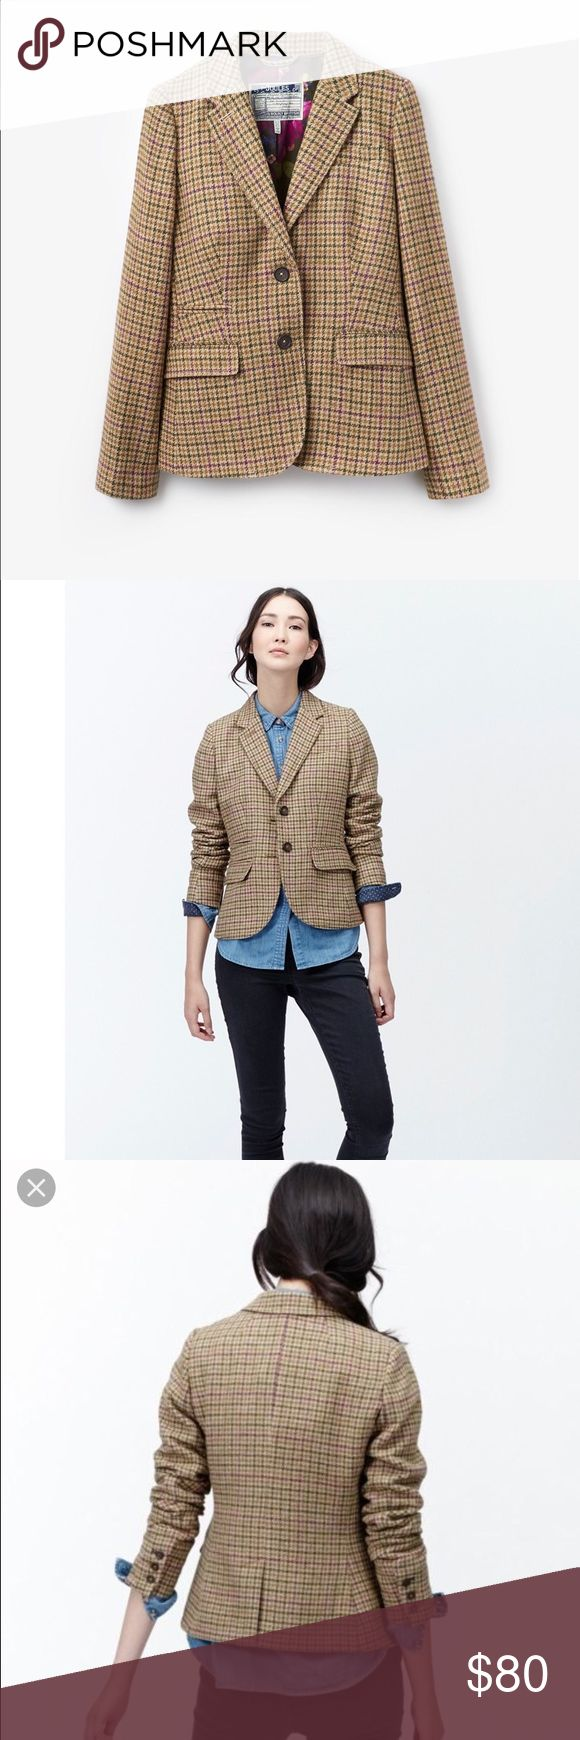 🆕NWT Joules Portman Dogstooth Blazer Brand new with tags, adorable floral lining. Classic. Joules Jackets & Coats Blazers